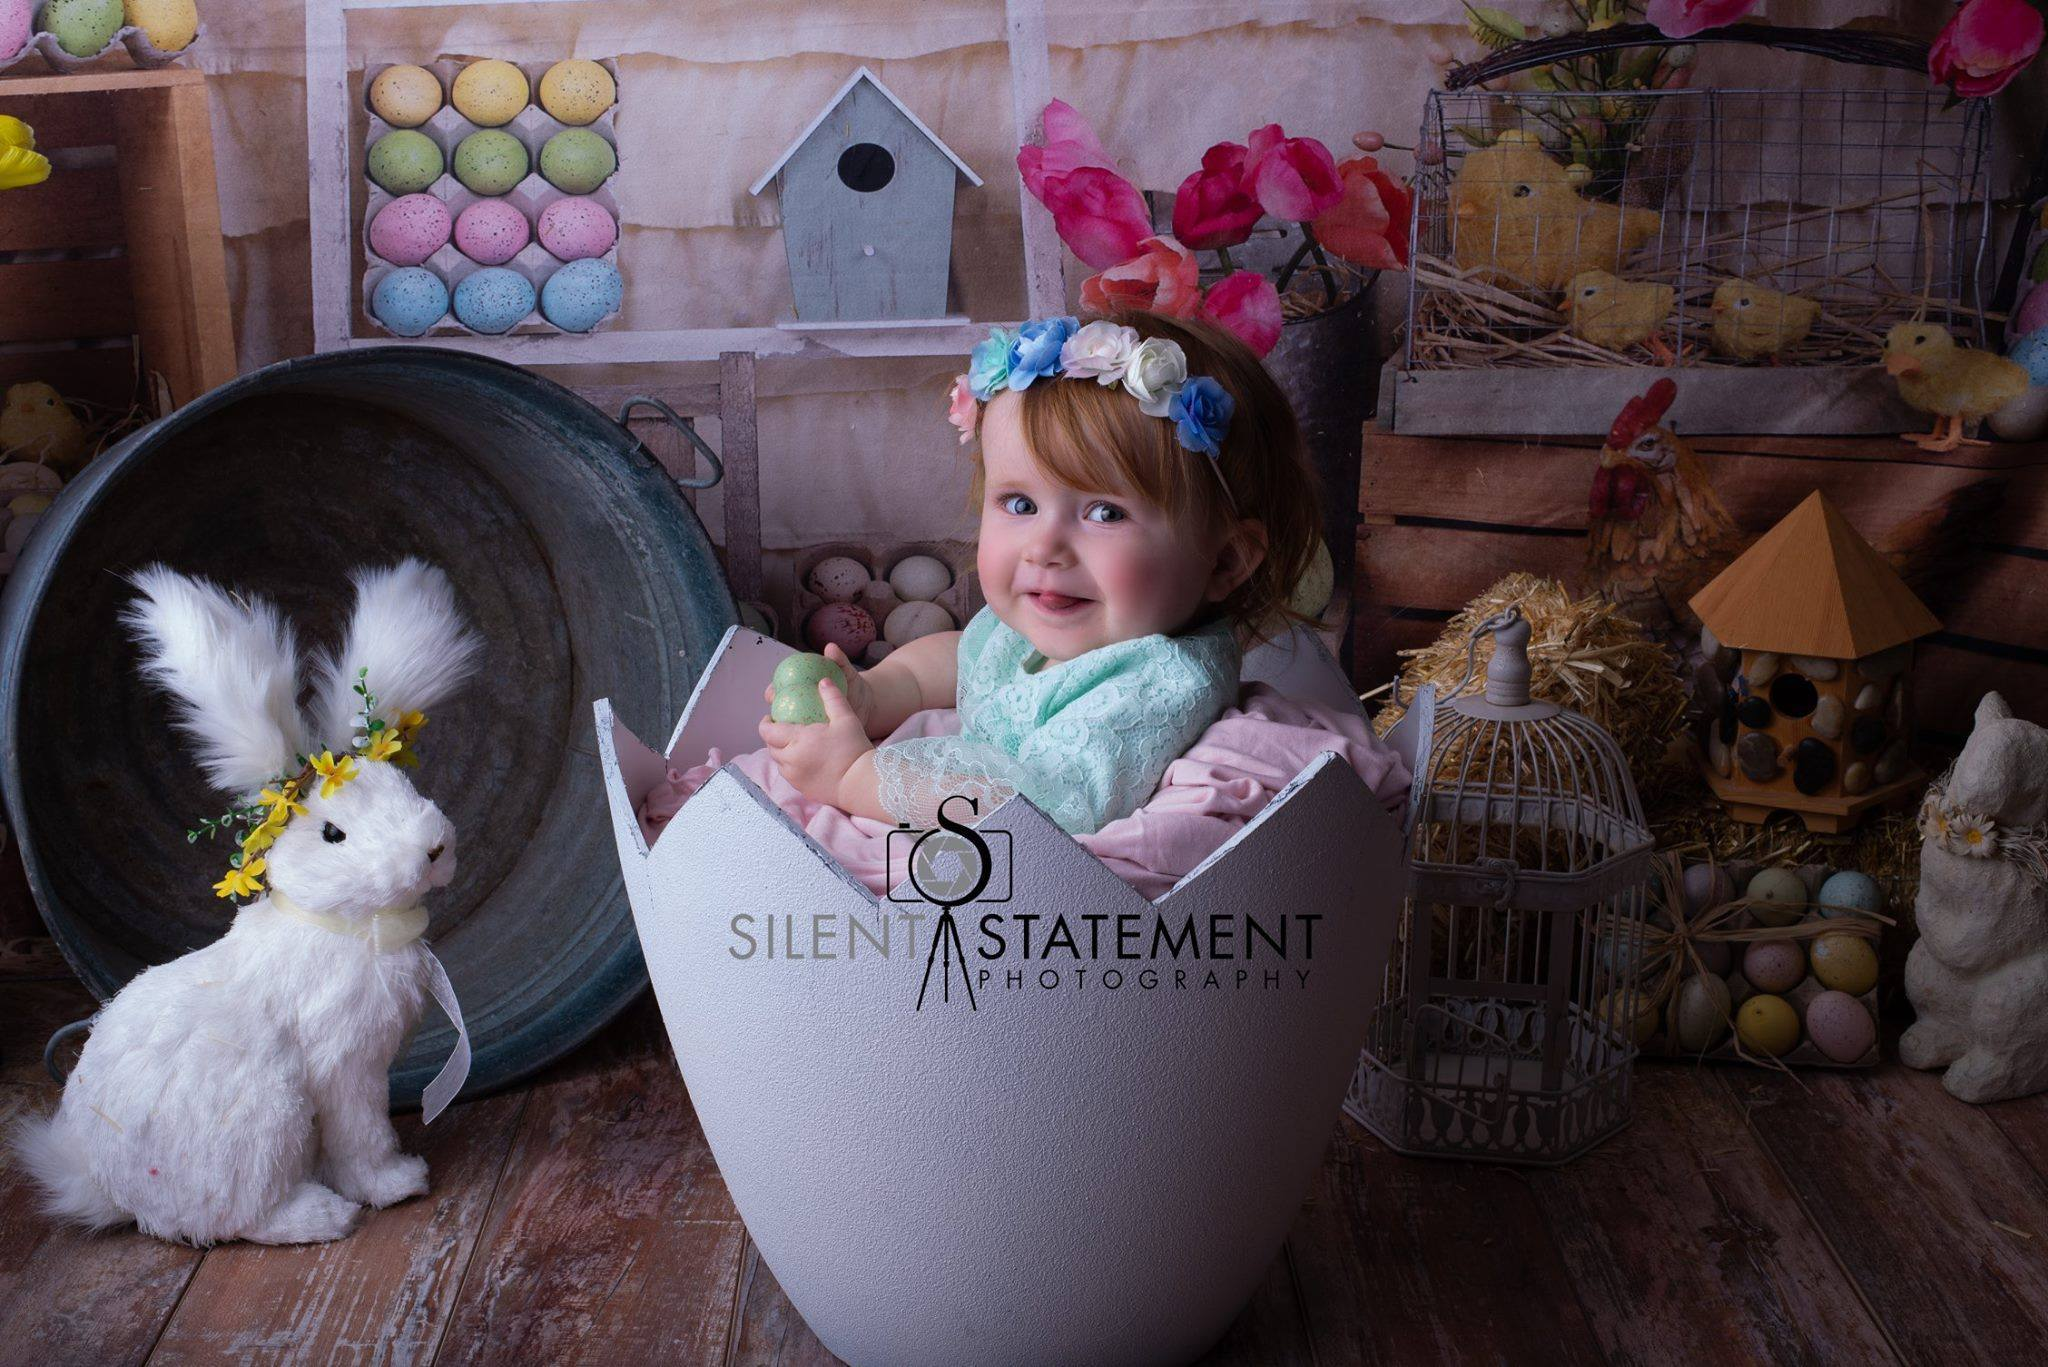 Load image into Gallery viewer, Katebackdrop:Kate Colorful Eggs Happy Easter Backdrop for Photography